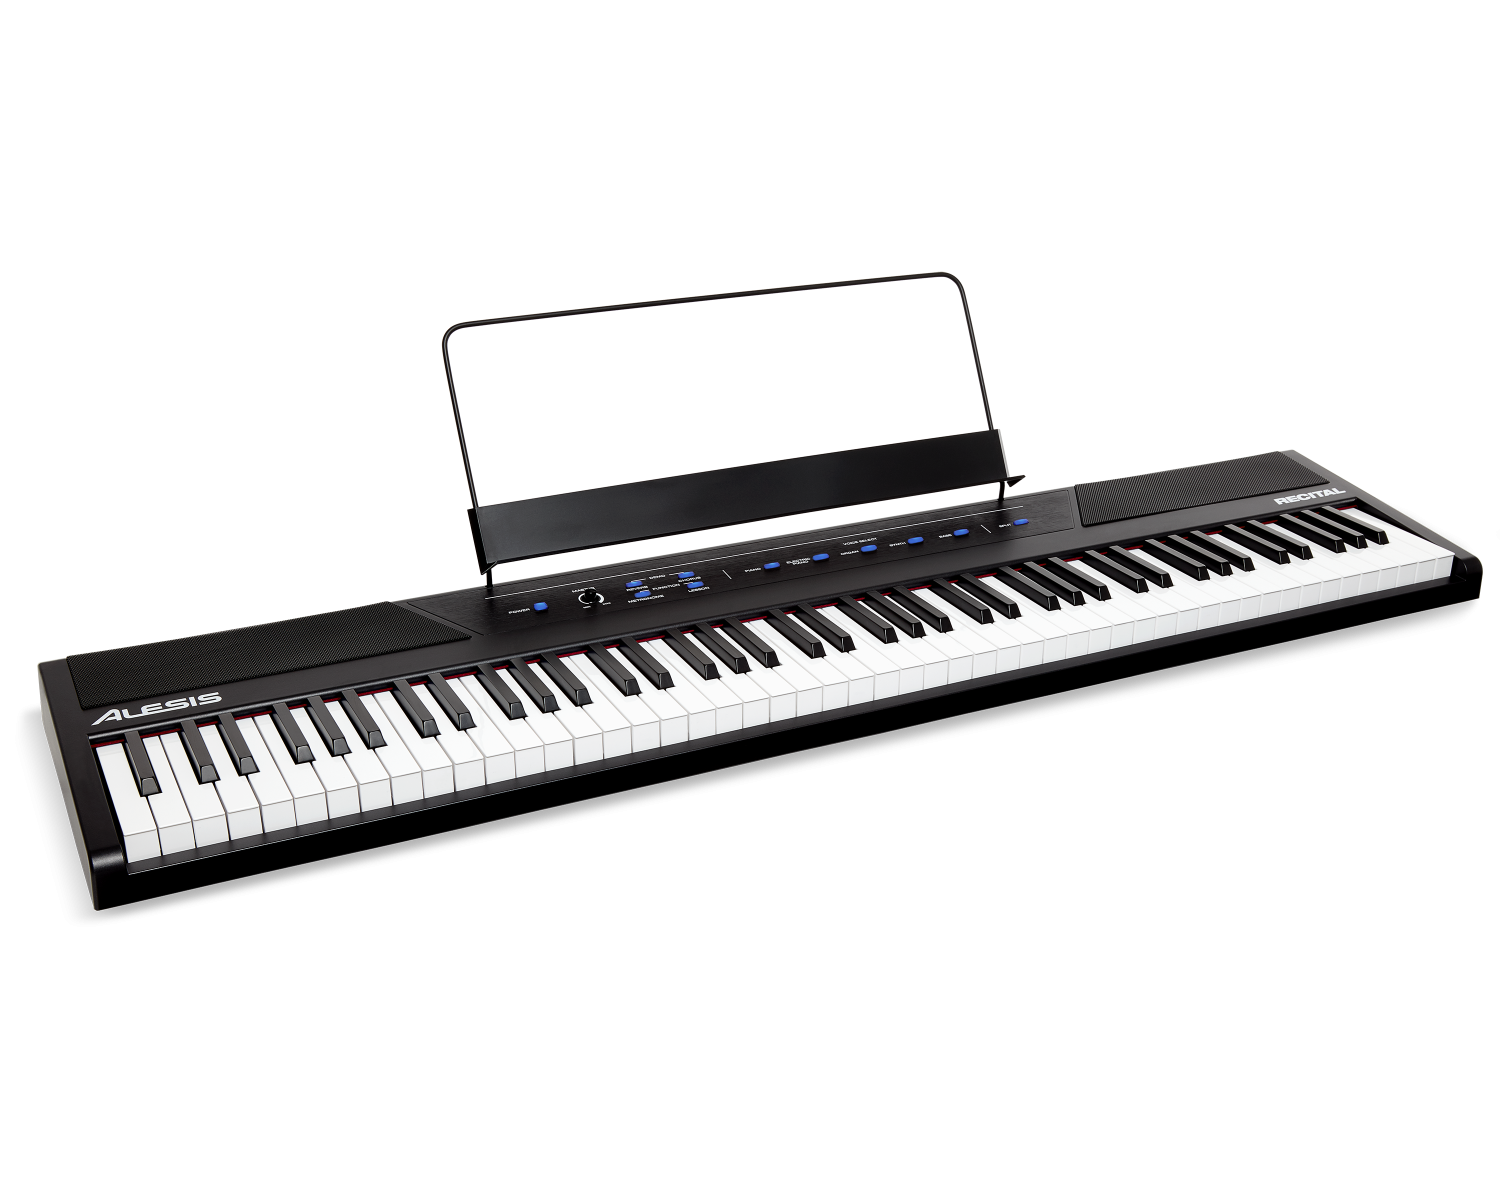 Alesis Recital - Frequently Asked Questions